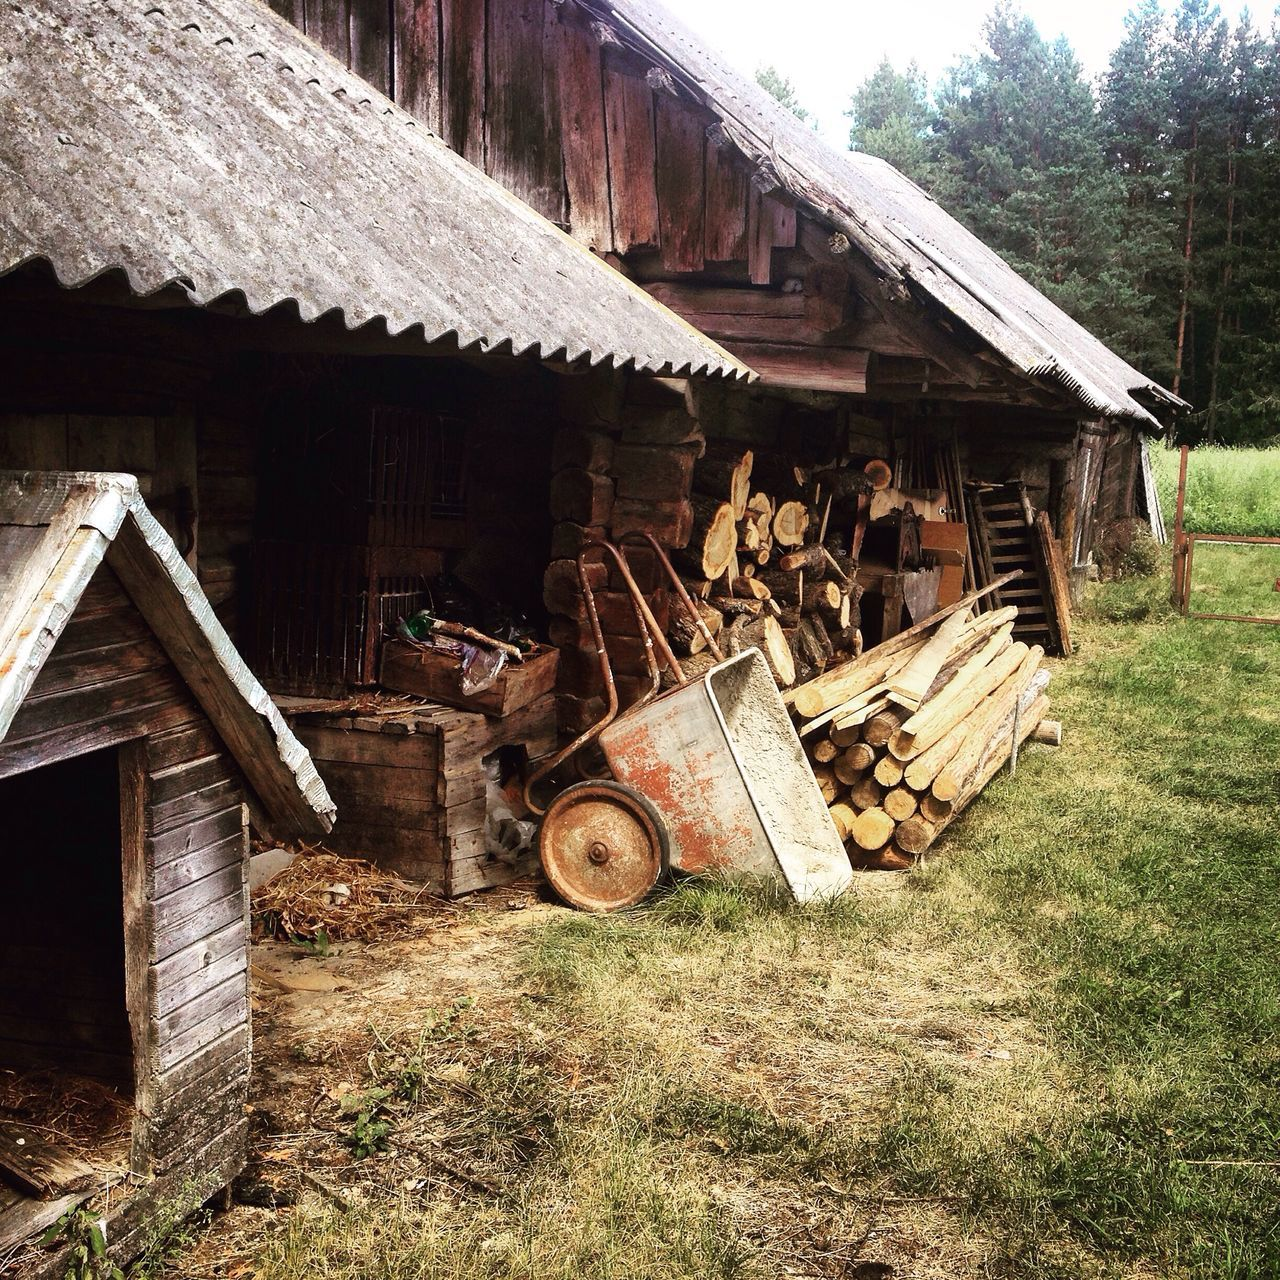 wood - material, grass, architecture, day, building exterior, field, abandoned, built structure, house, no people, outdoors, barn, tree, nature